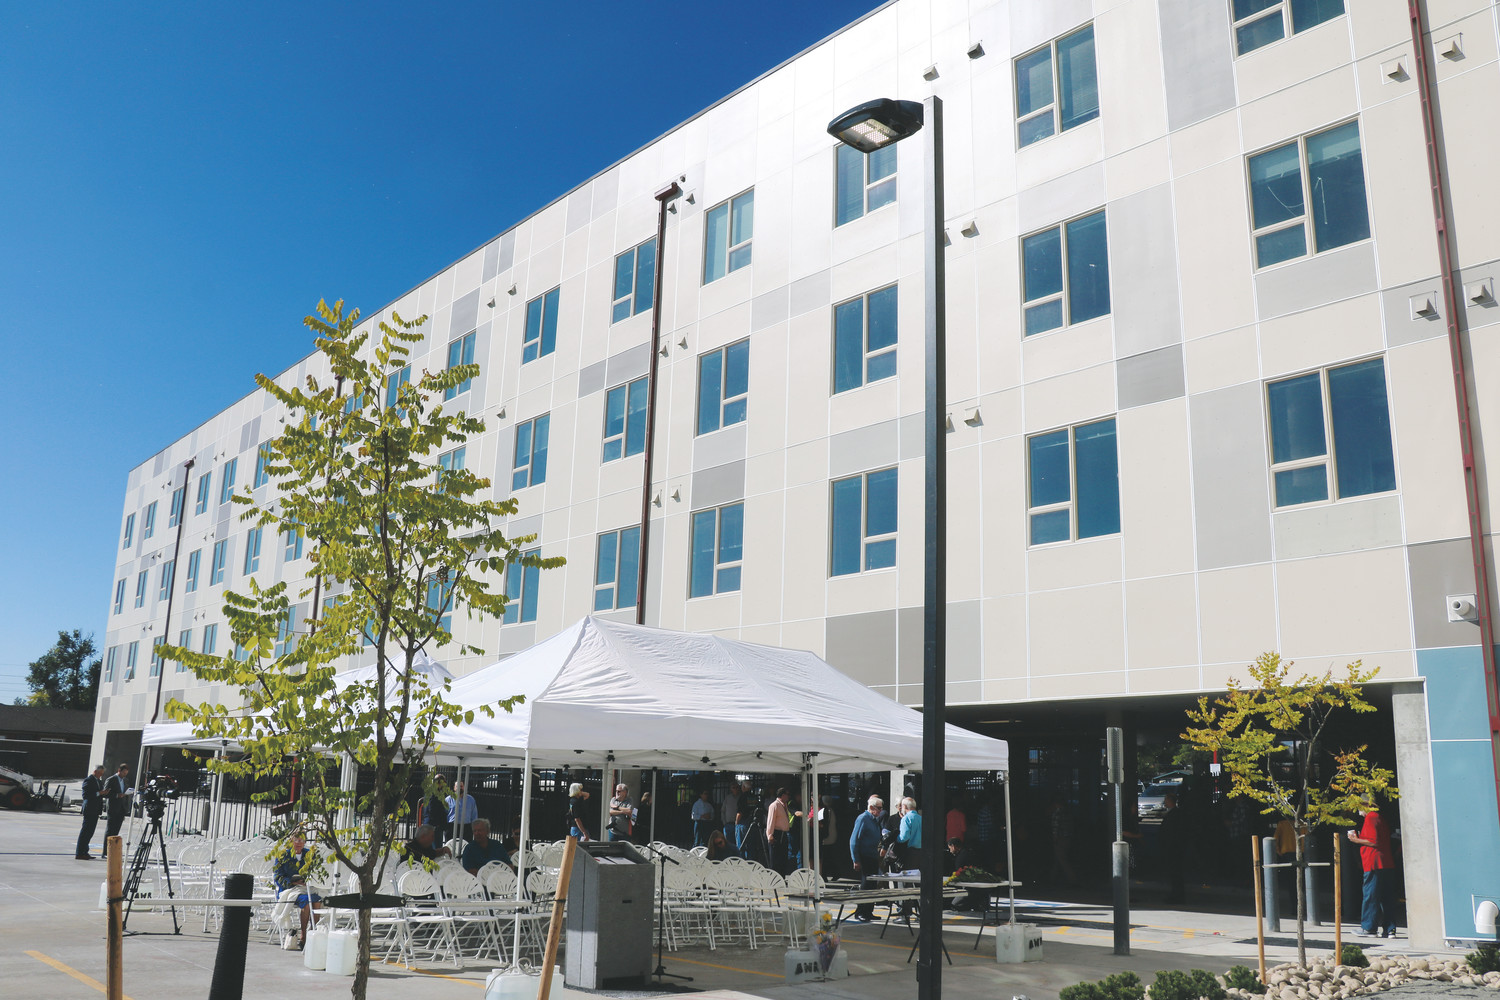 Archway Housing and Services' 40 West Residences, located at 5830 W. Colfax Ave., celebrated its opening on Oct. 5, and is an affordable housing project in an area that has mainly seen market rate or luxury apartments be approved.